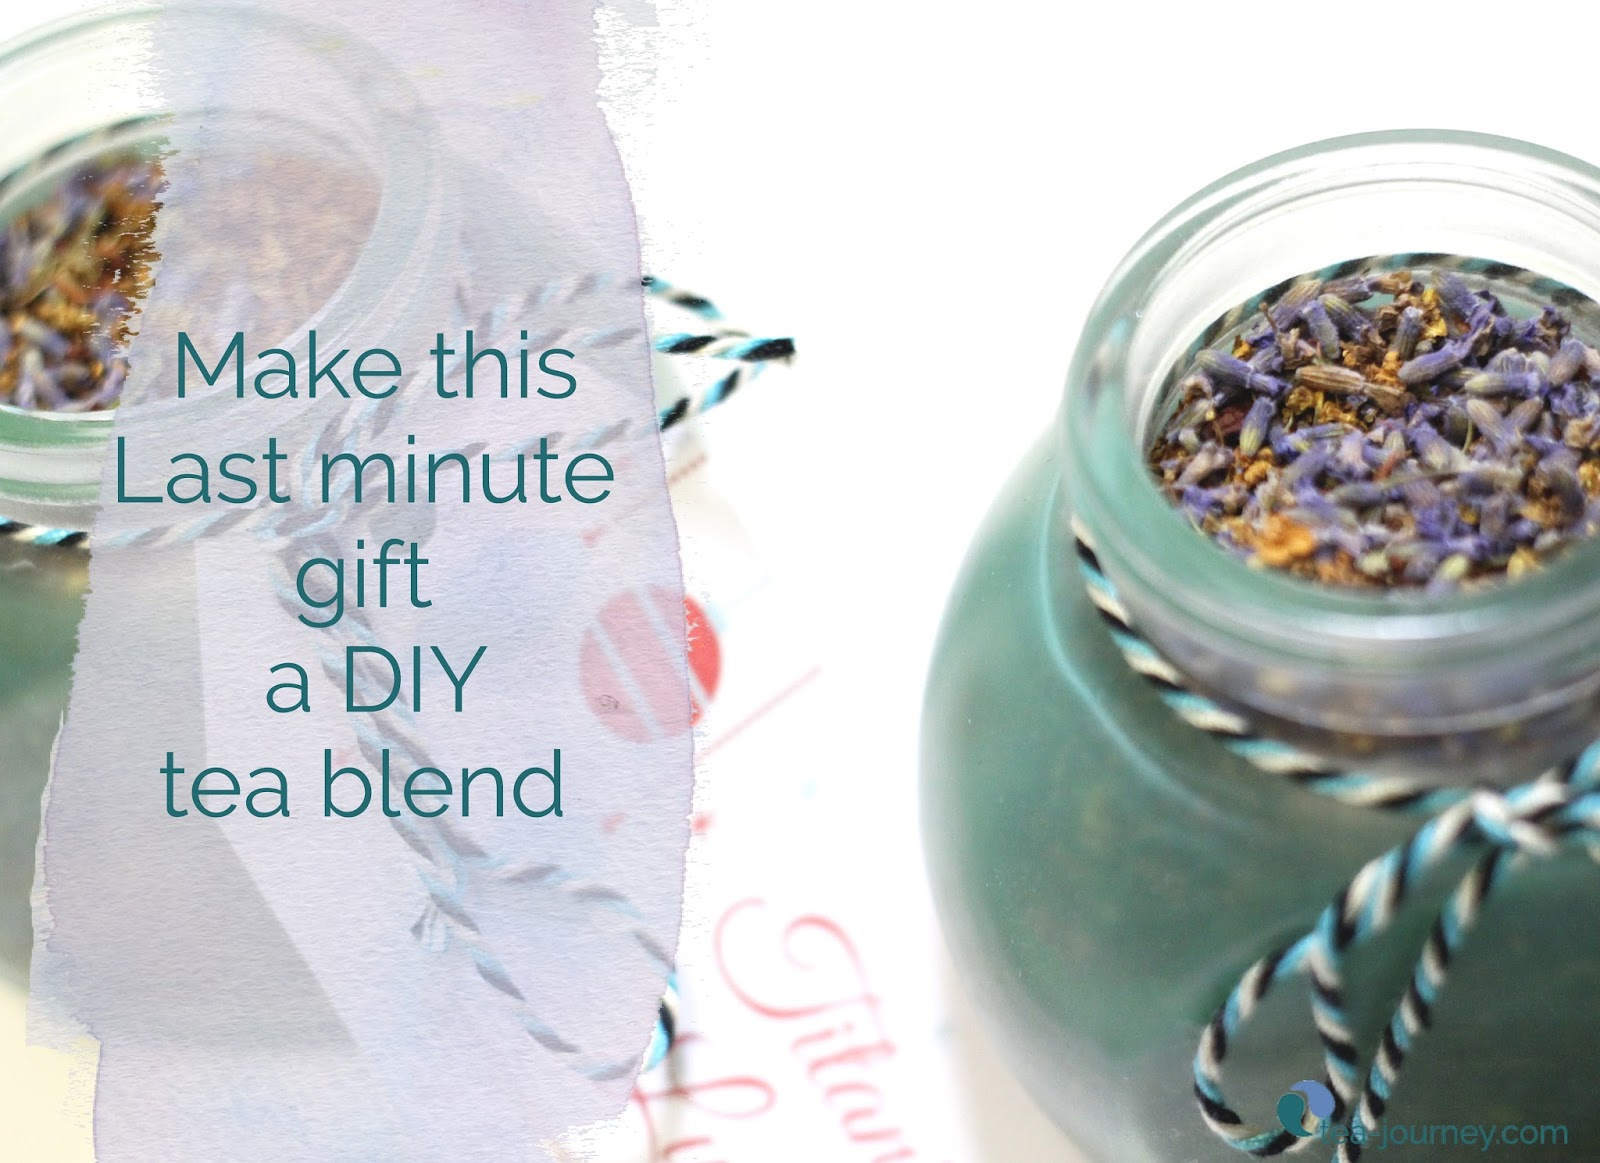 Need a last minute gift that will take no time at all? This DIY tea blend is sure to do the trick and it is full of love for your recipient. Give the gift of health from the heart.